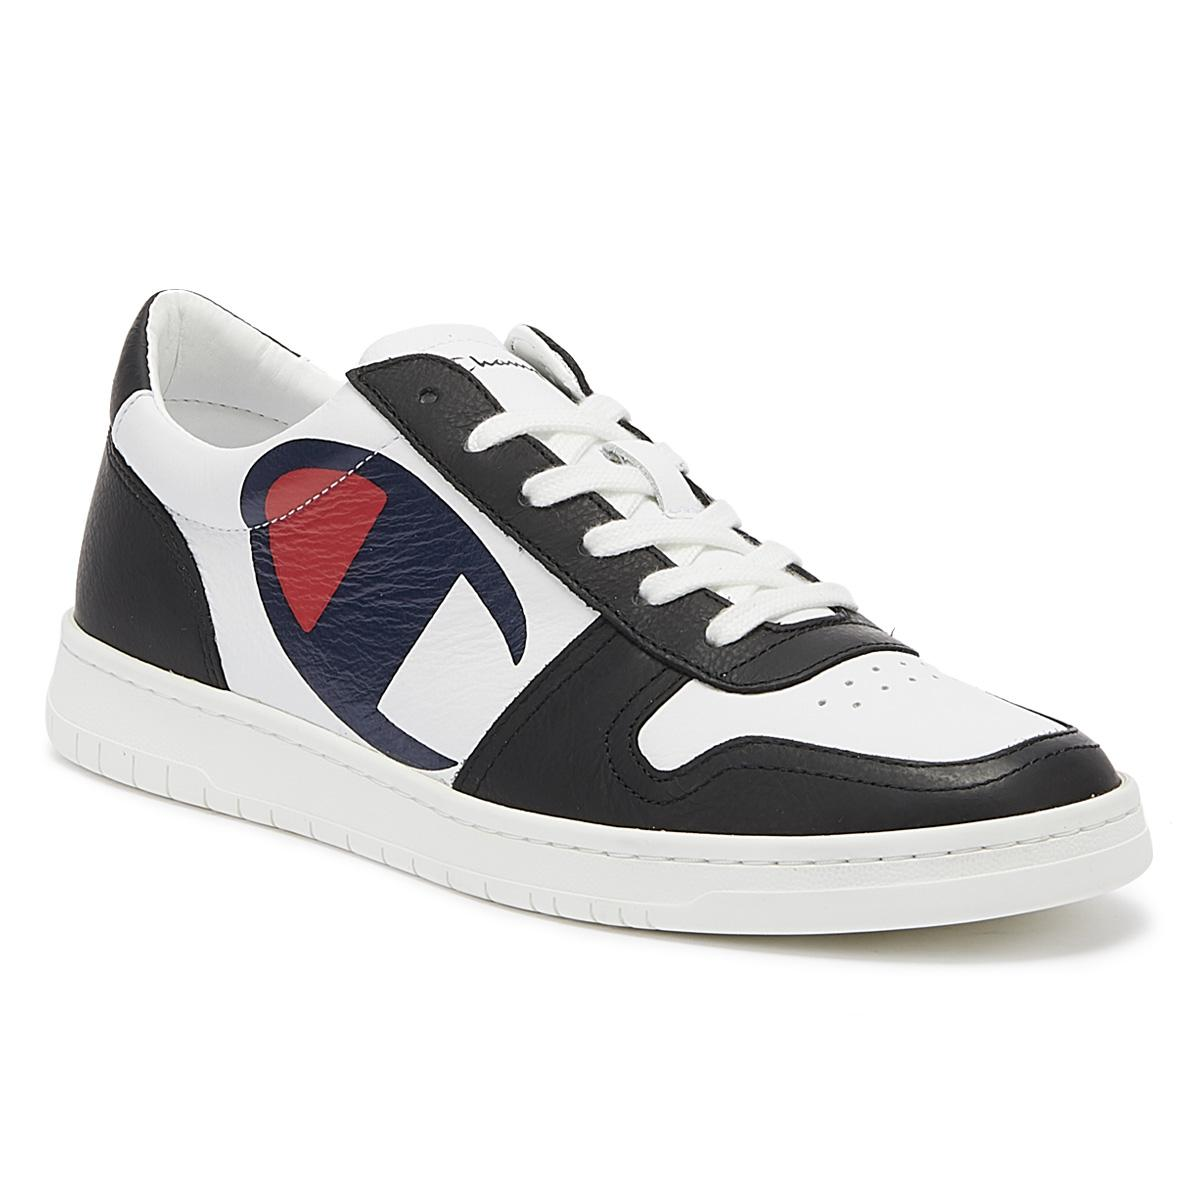 b8252e6cc Lyst - Champion 919 Roch Low Mens White   Black Trainers in White ...